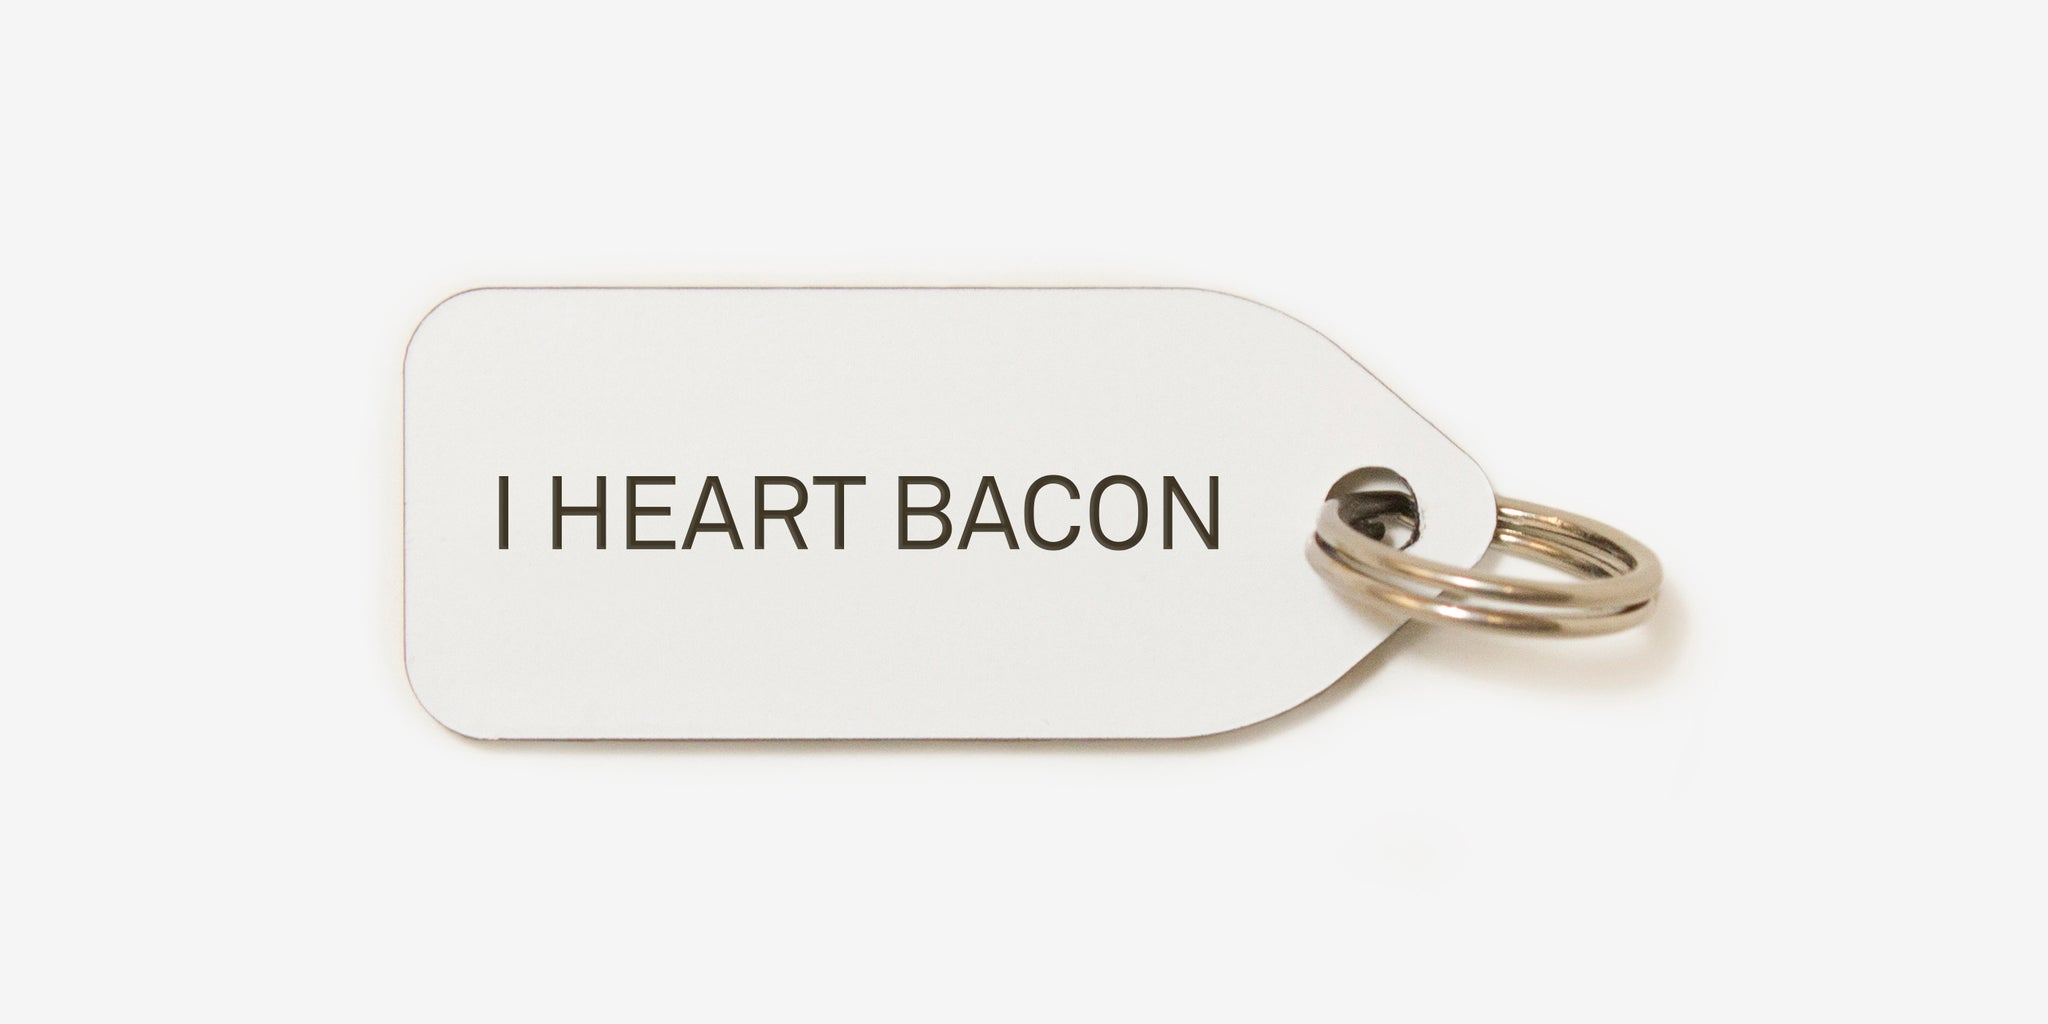 I heart bacon | dog tag | collar charm |